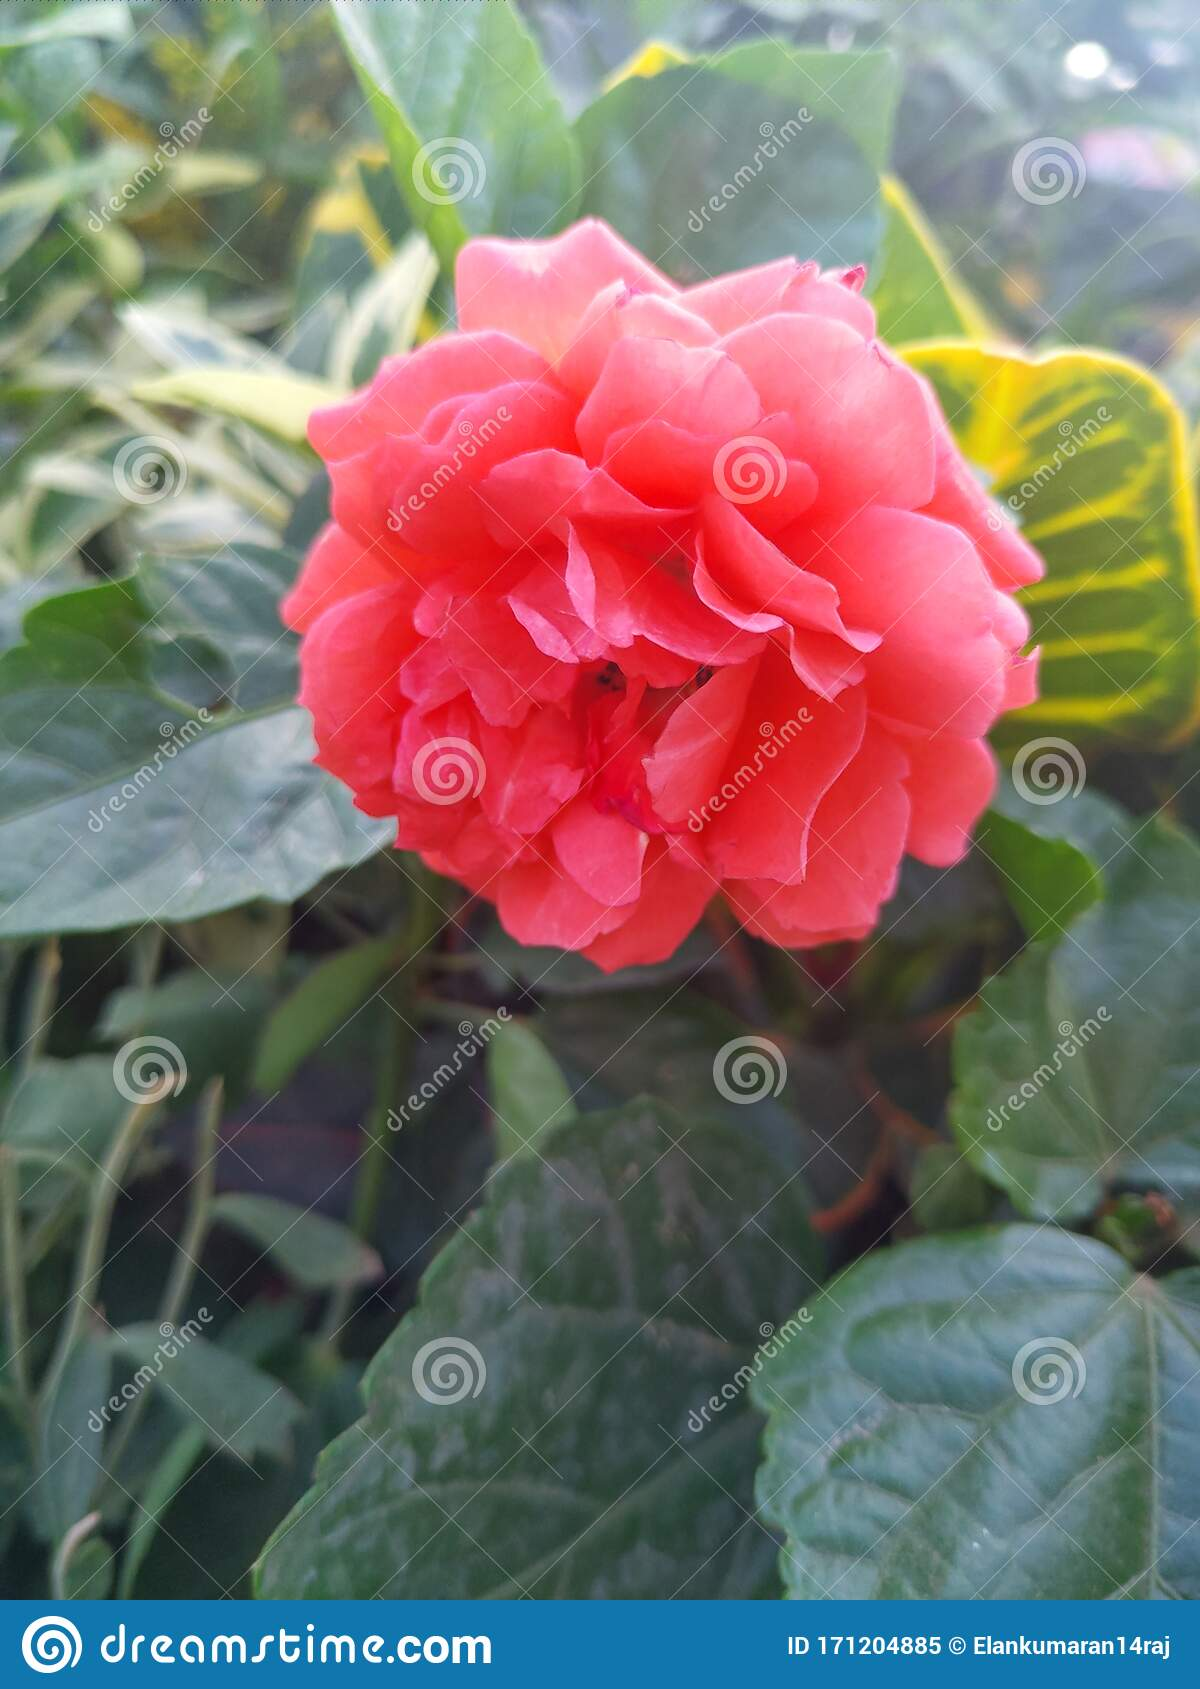 Good Morning Rose Flower Beautiful Sunlight From Back Side In A Garden City Stock Image Image Of Good Garden 171204885